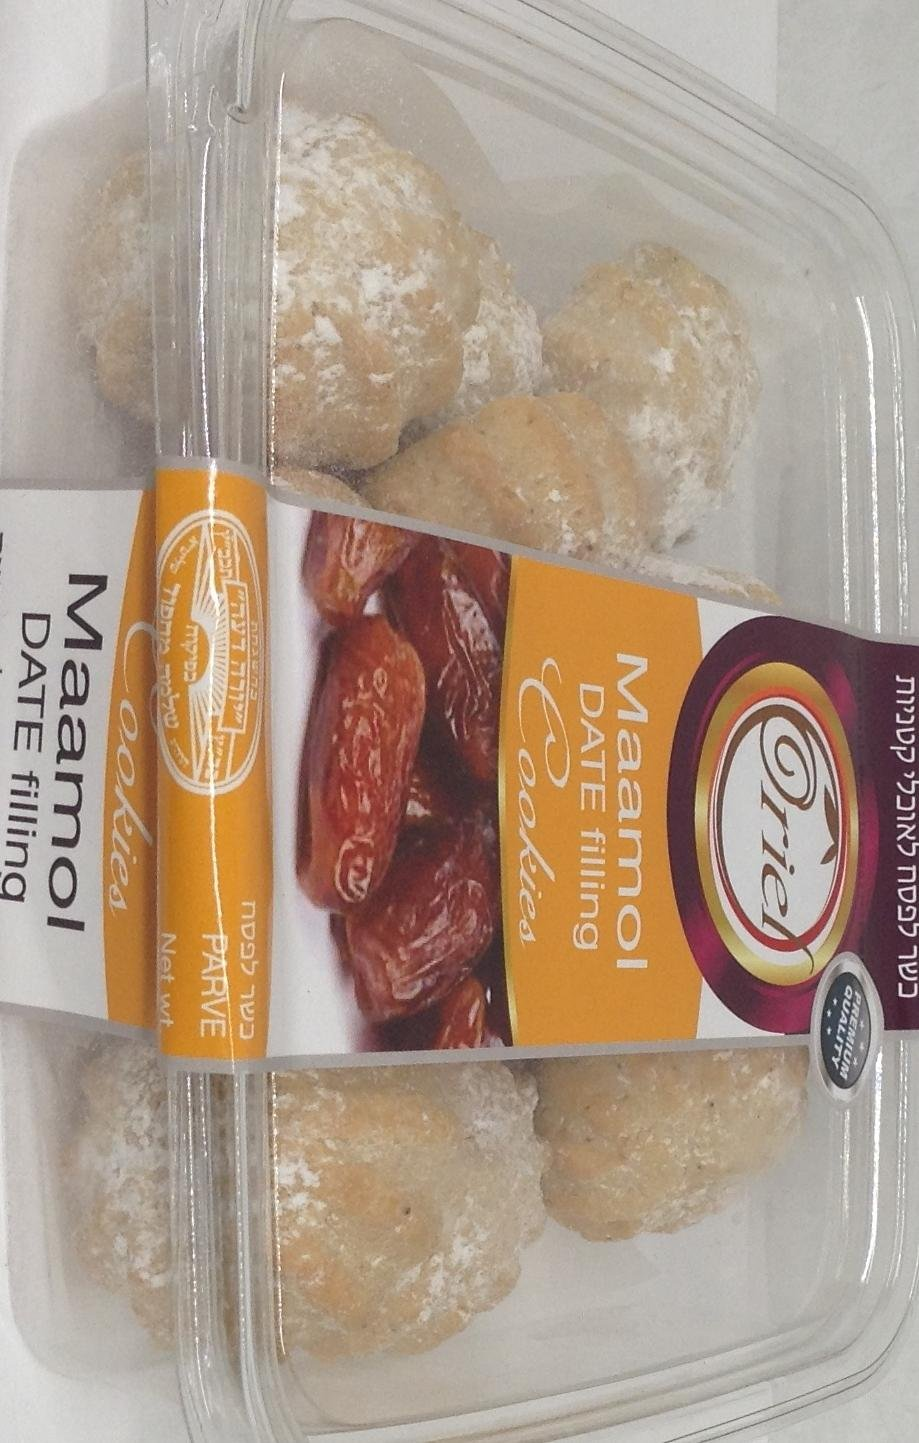 Oriel Maamol Date Filling Cookies Koshe For Passover 10.5 Oz. Pk Of 3.